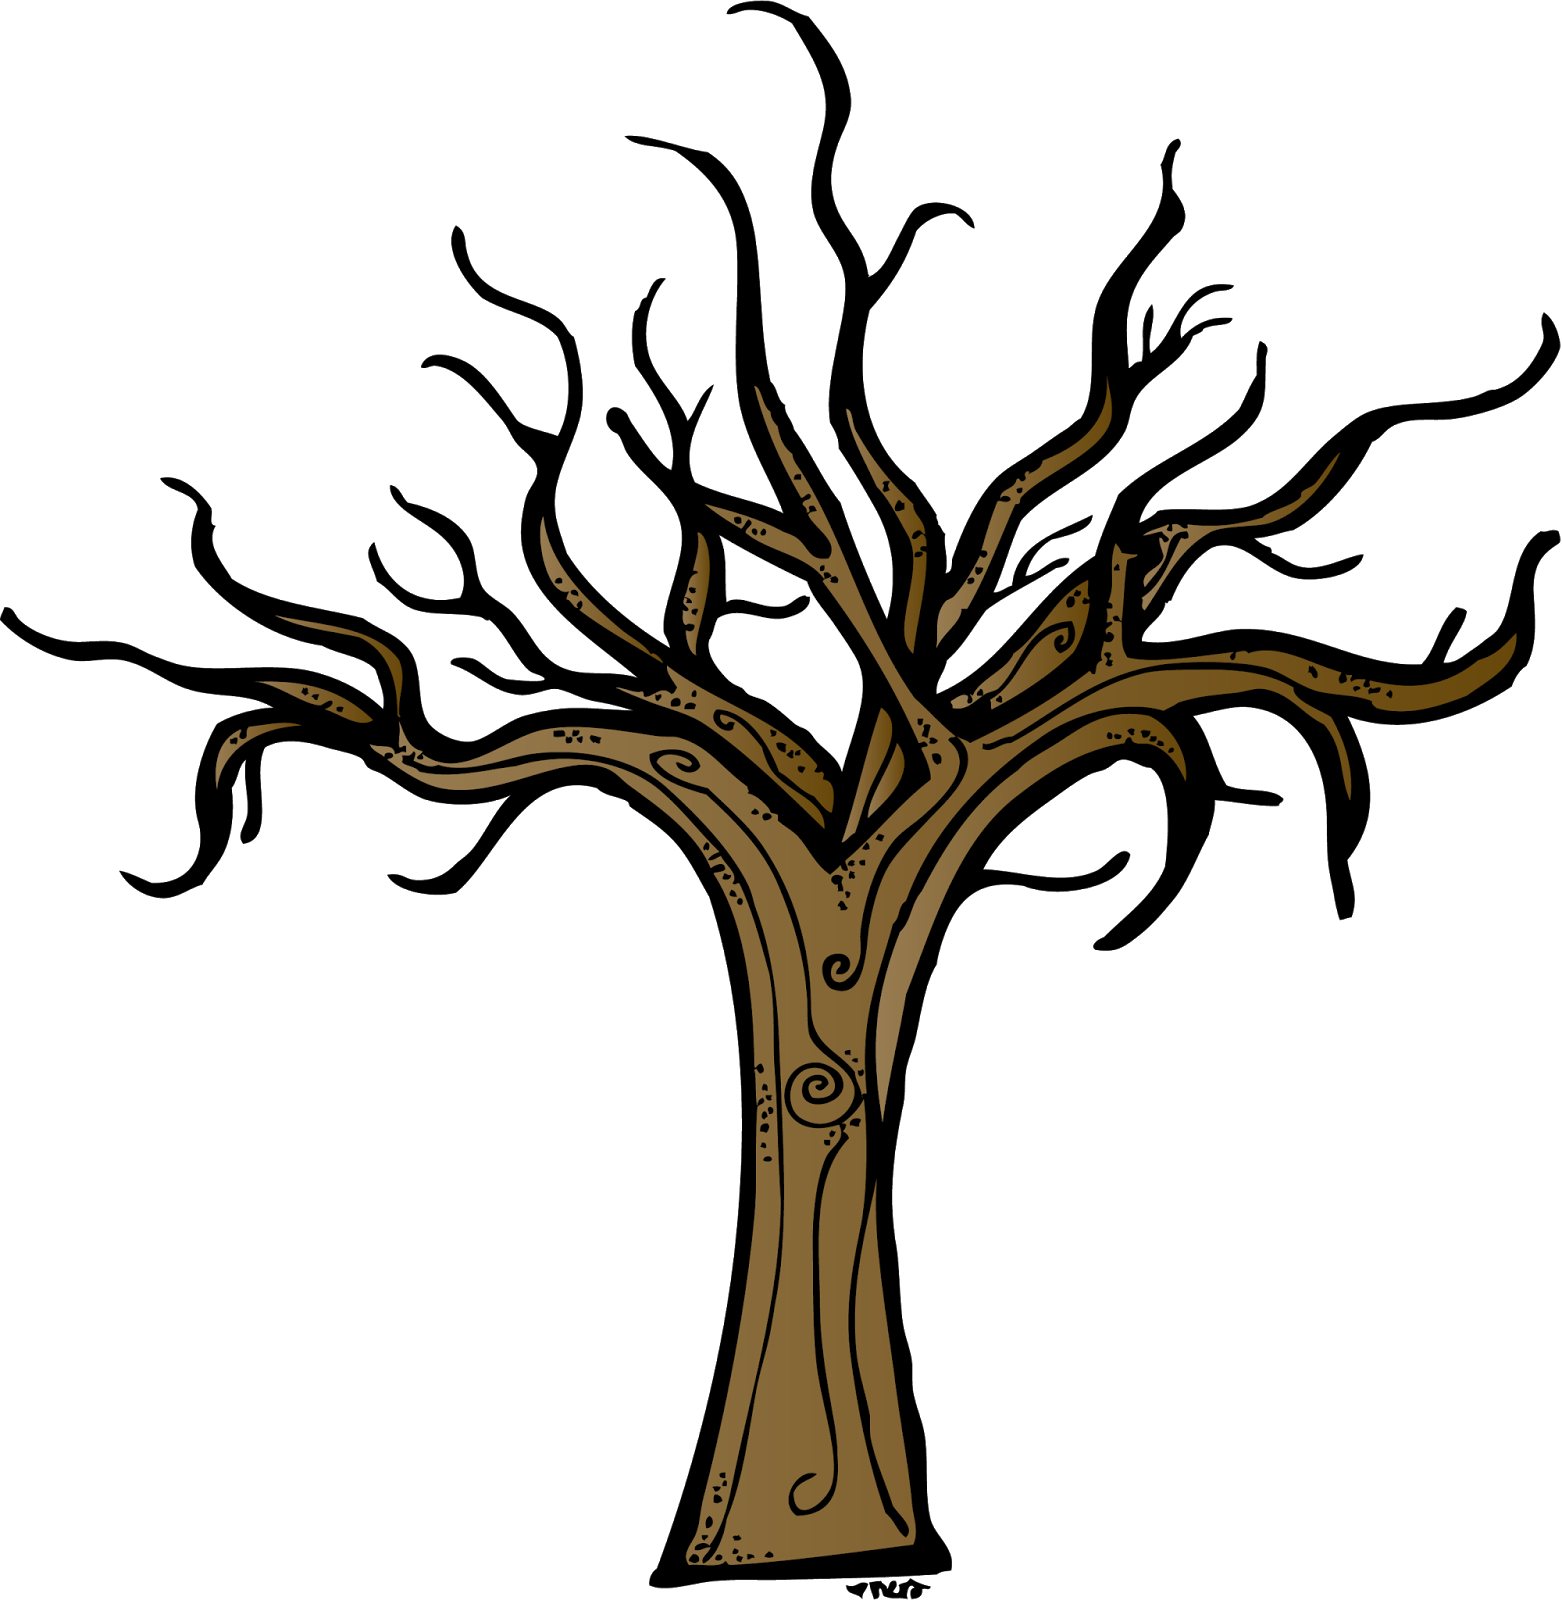 Dead Tree Trunk Clip Art.